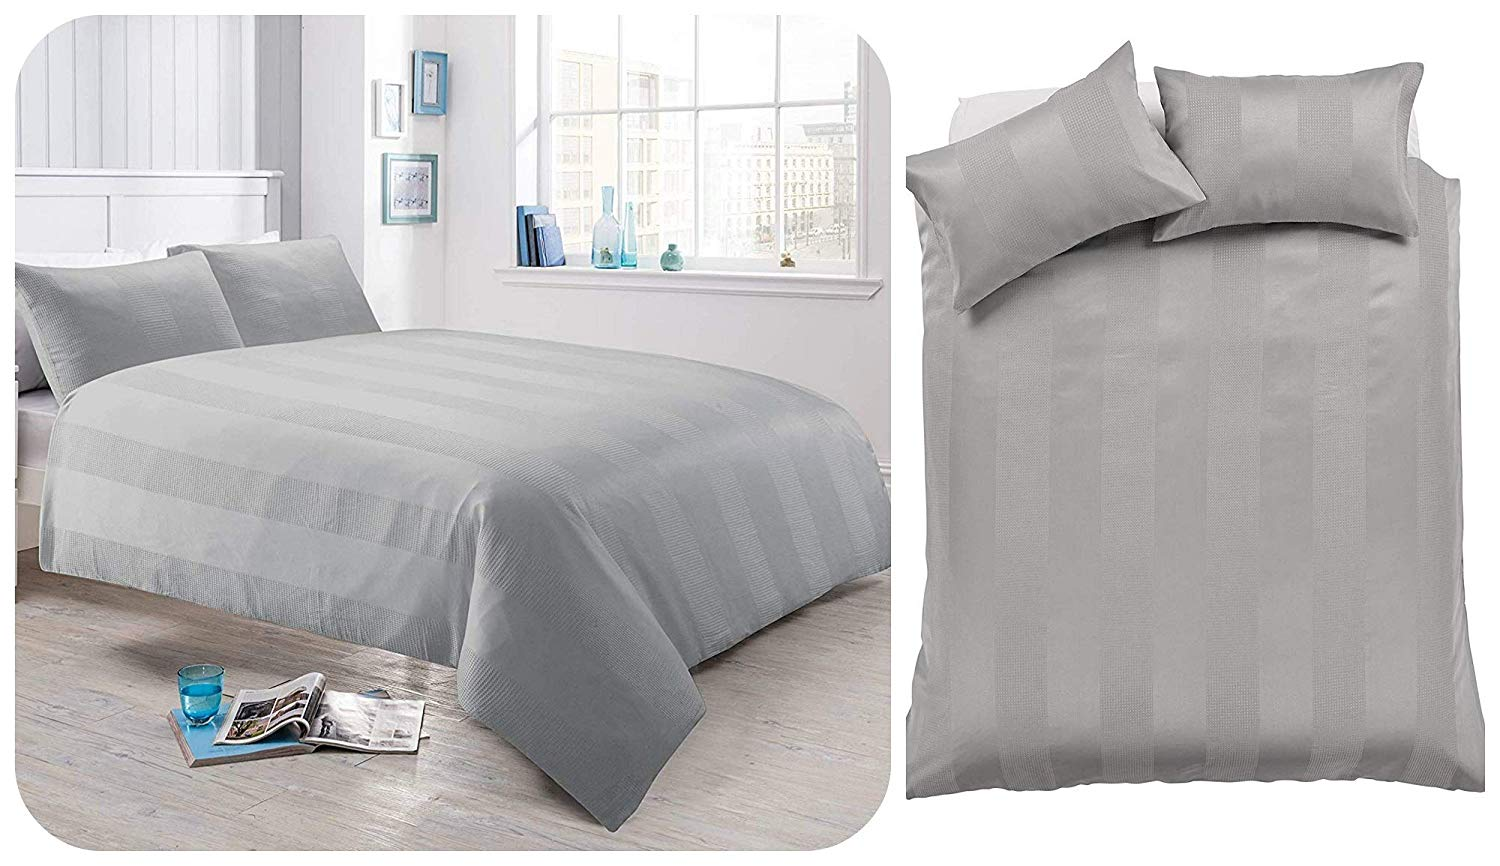 LUXURY Charlotte LACE Polyester DUVET Quilt Cover And Pillow Case Bedding